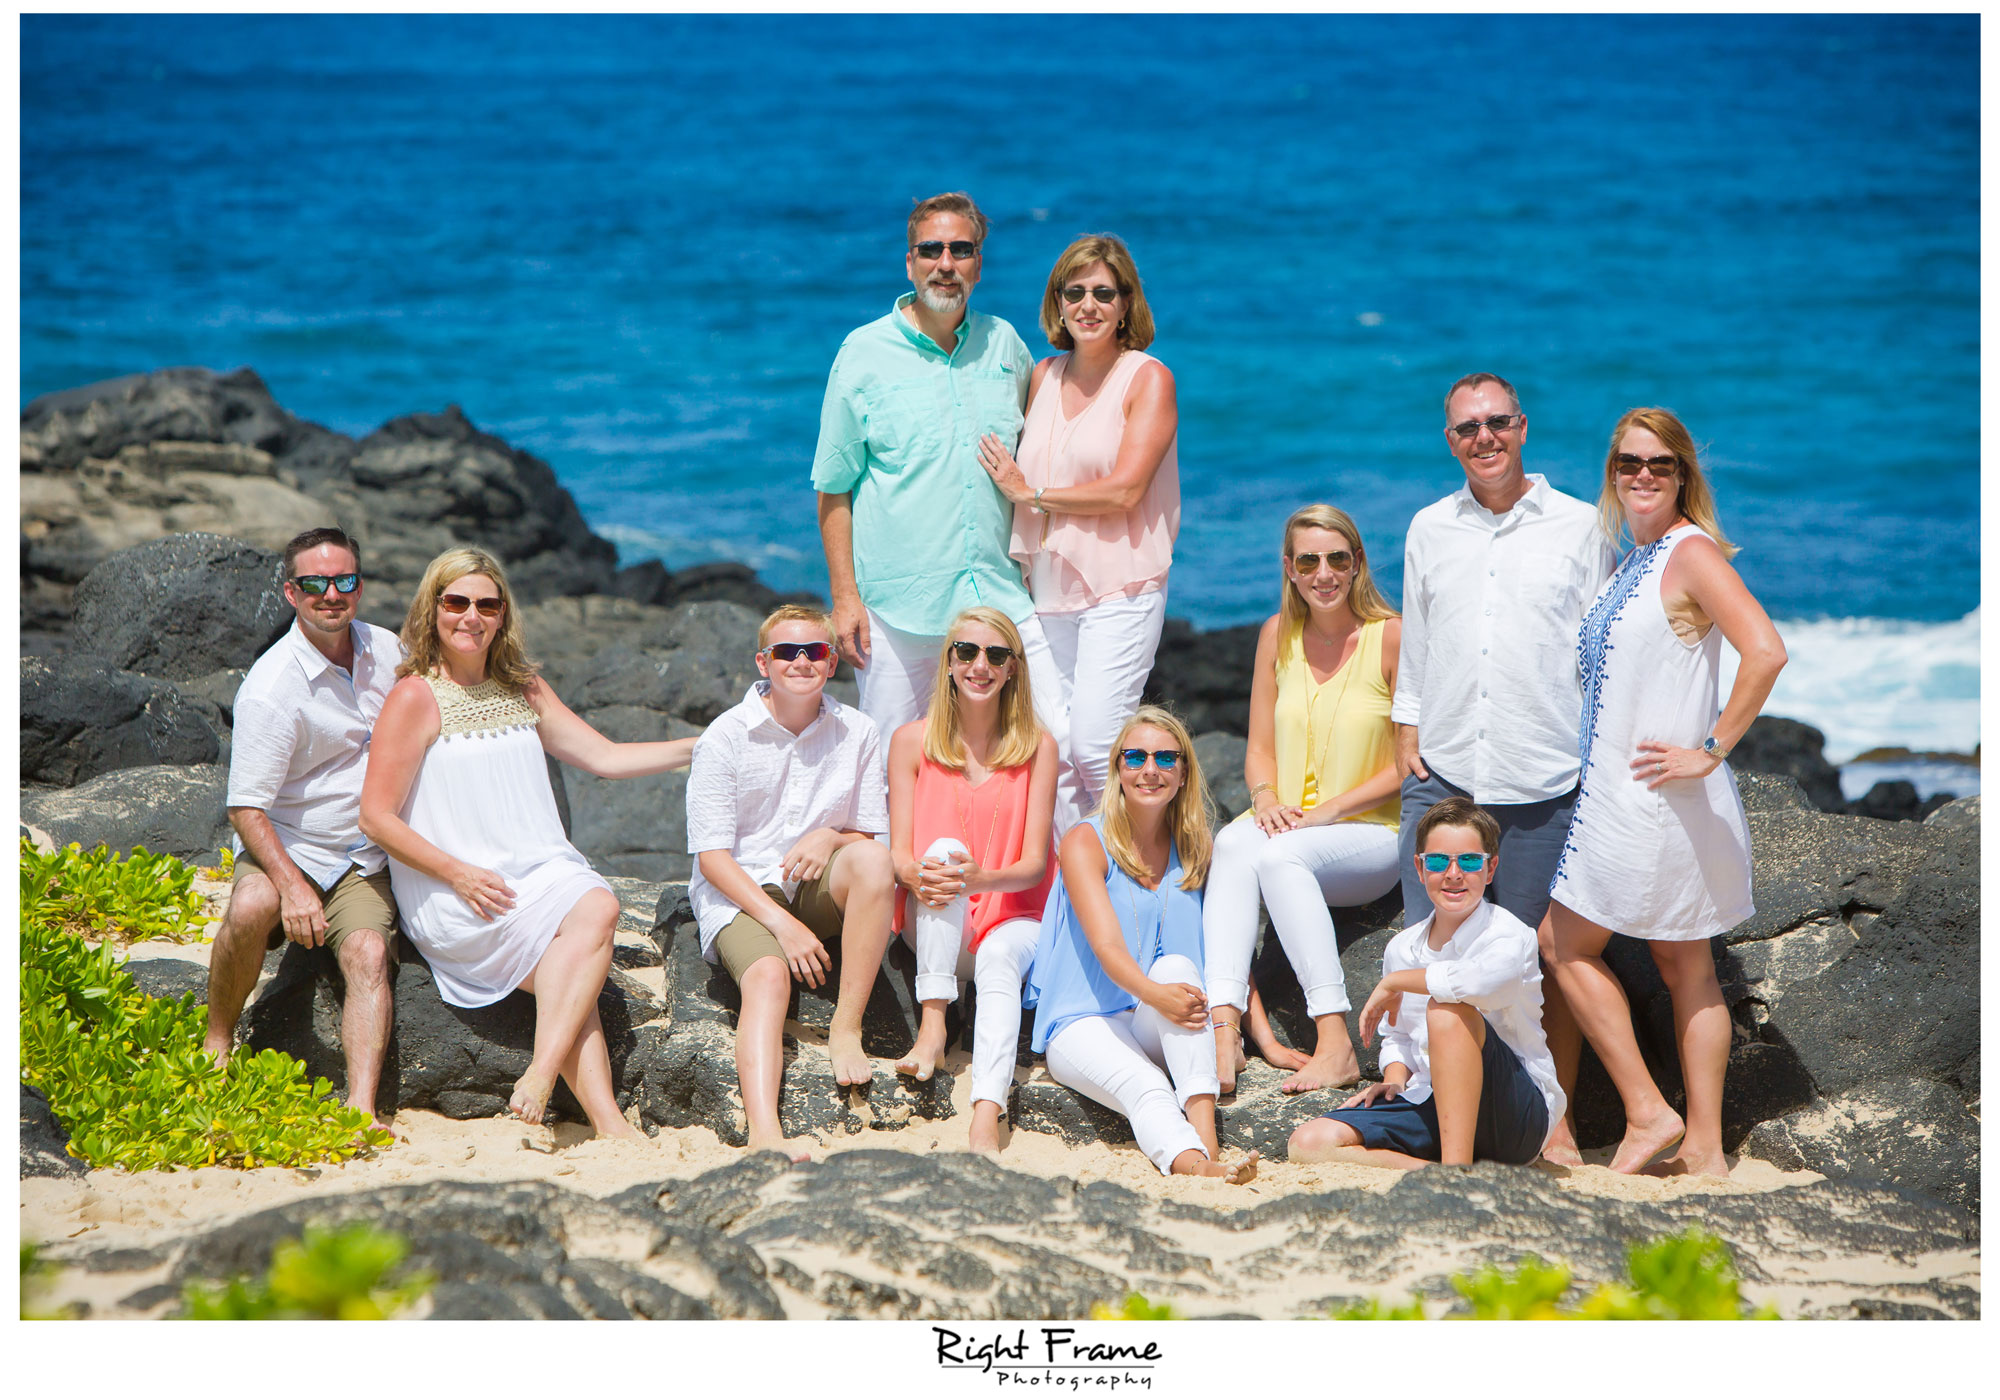 065_family-portrait-in-hawaii-makapuu-beach